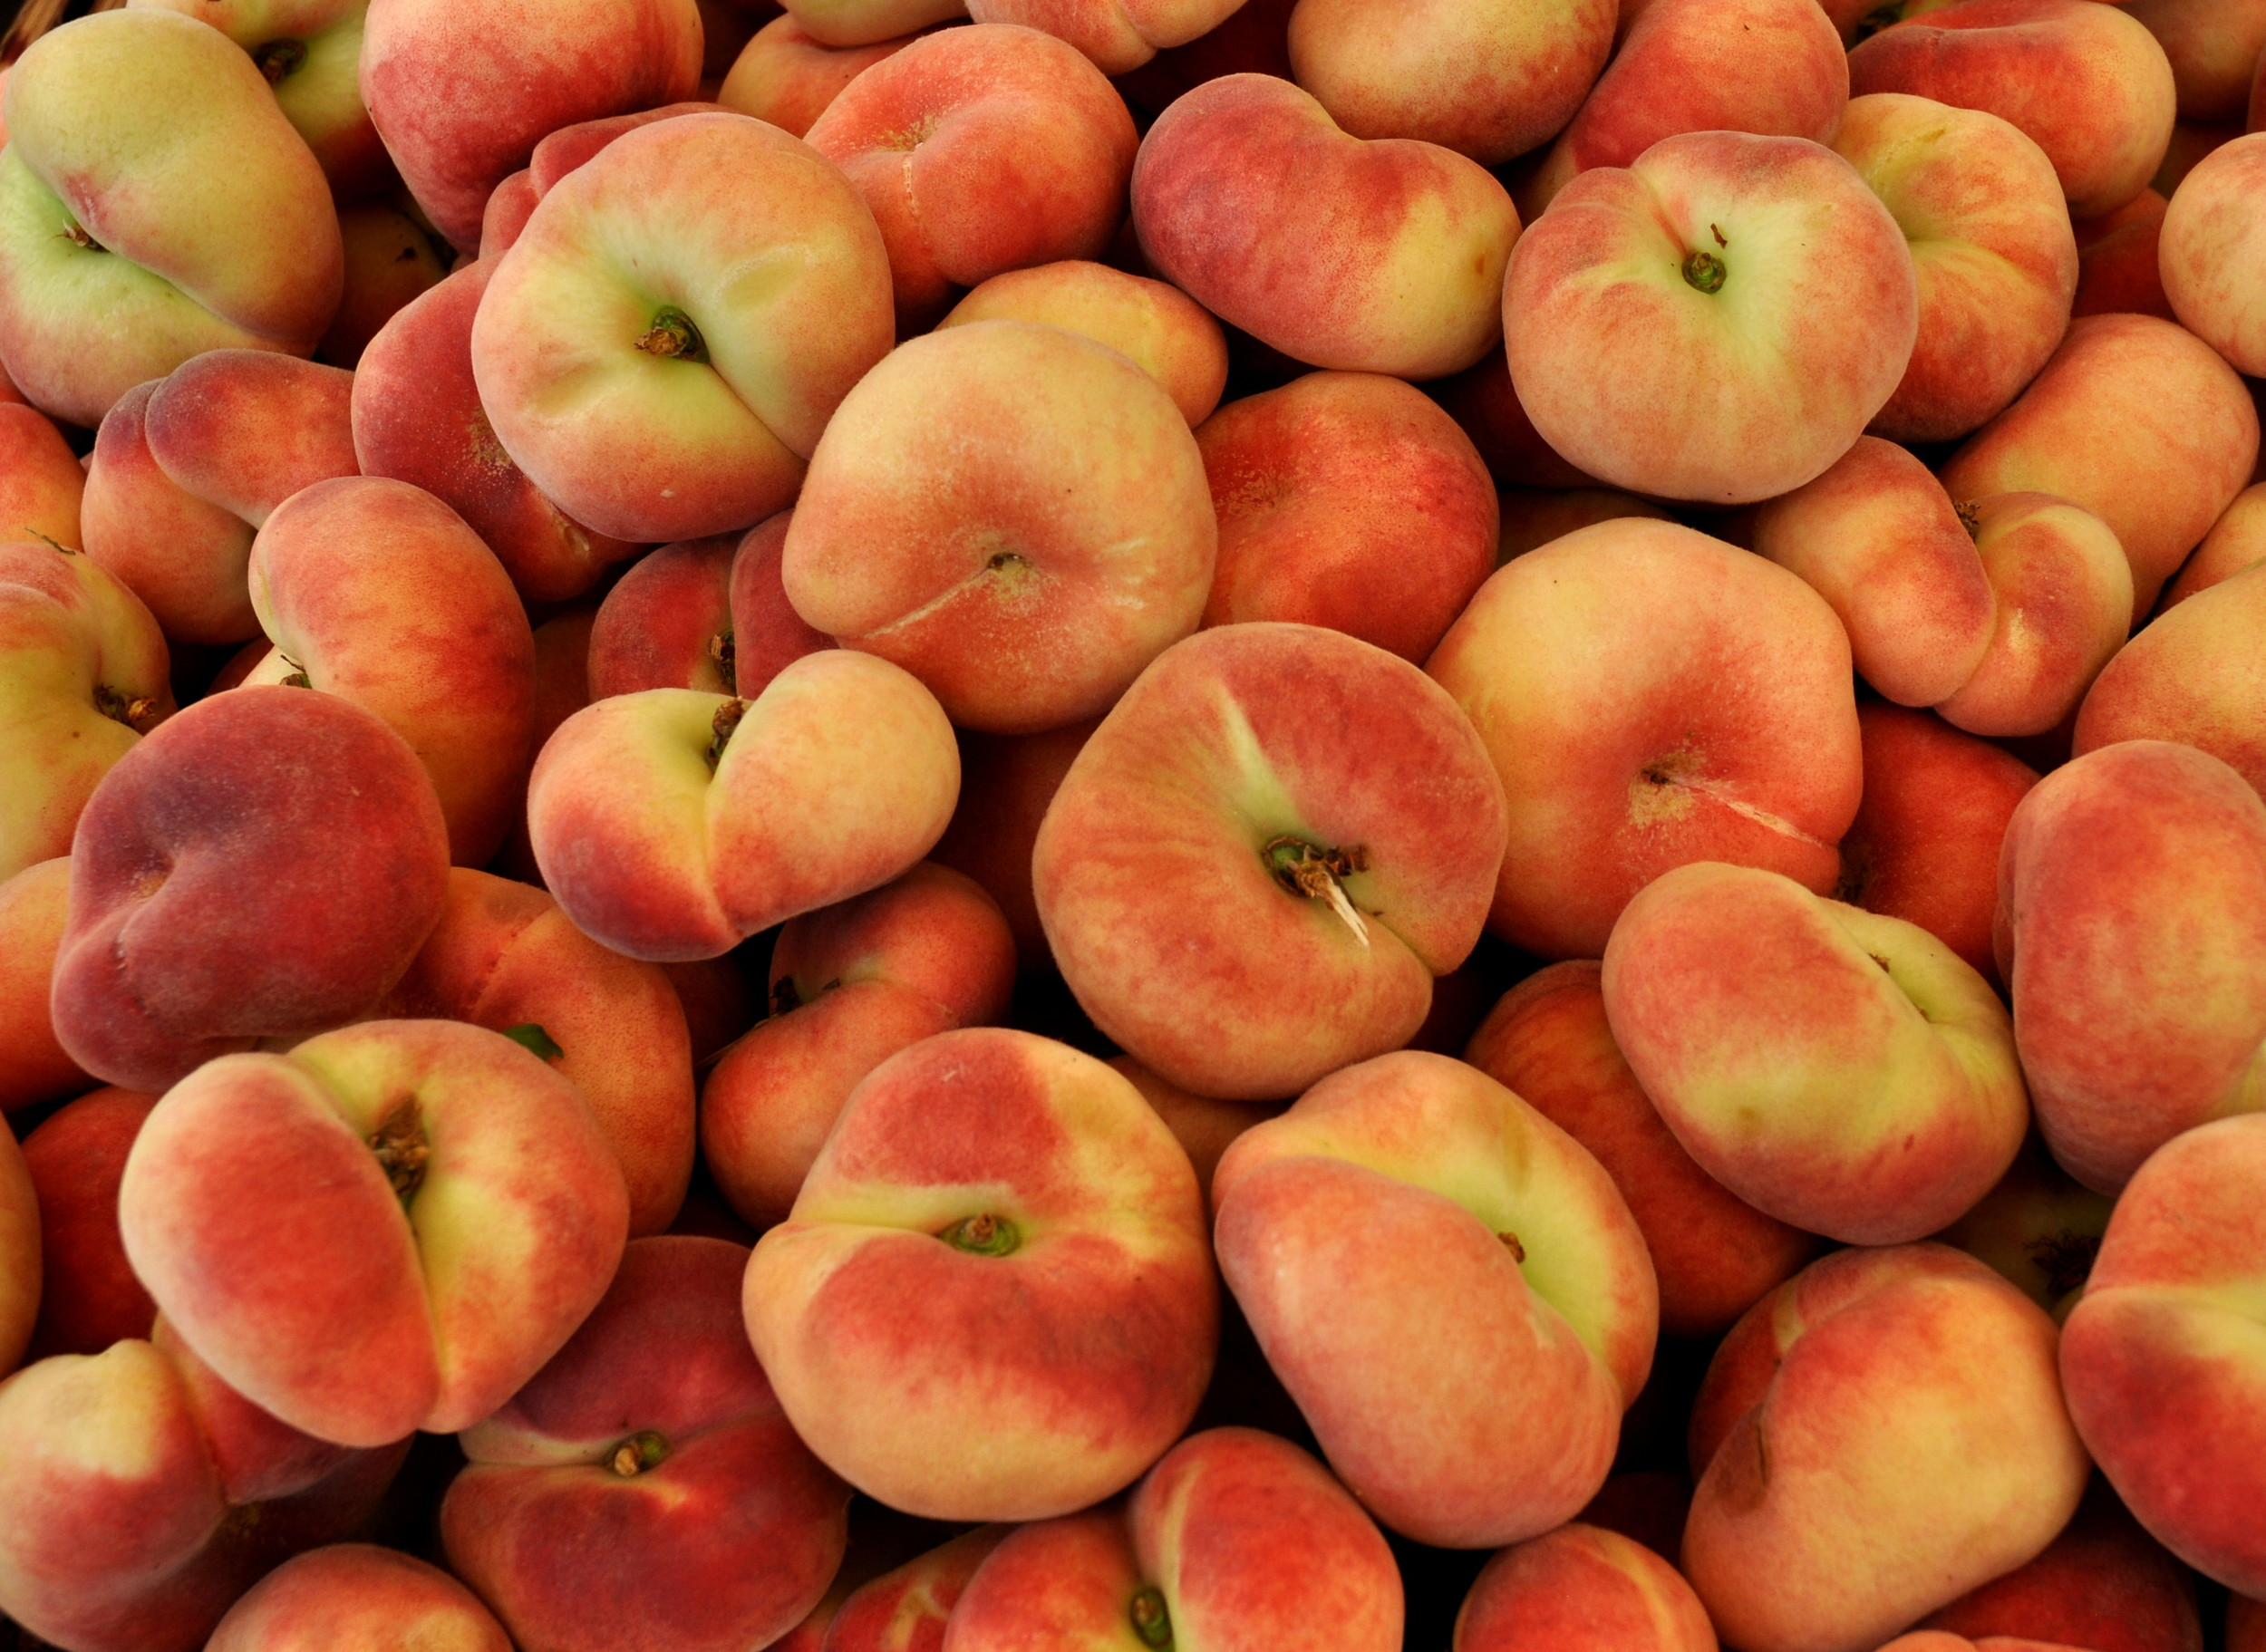 Donut peaches from Collins Family Orchards. Photo copyright 2014 by Zachary D. Lyons.